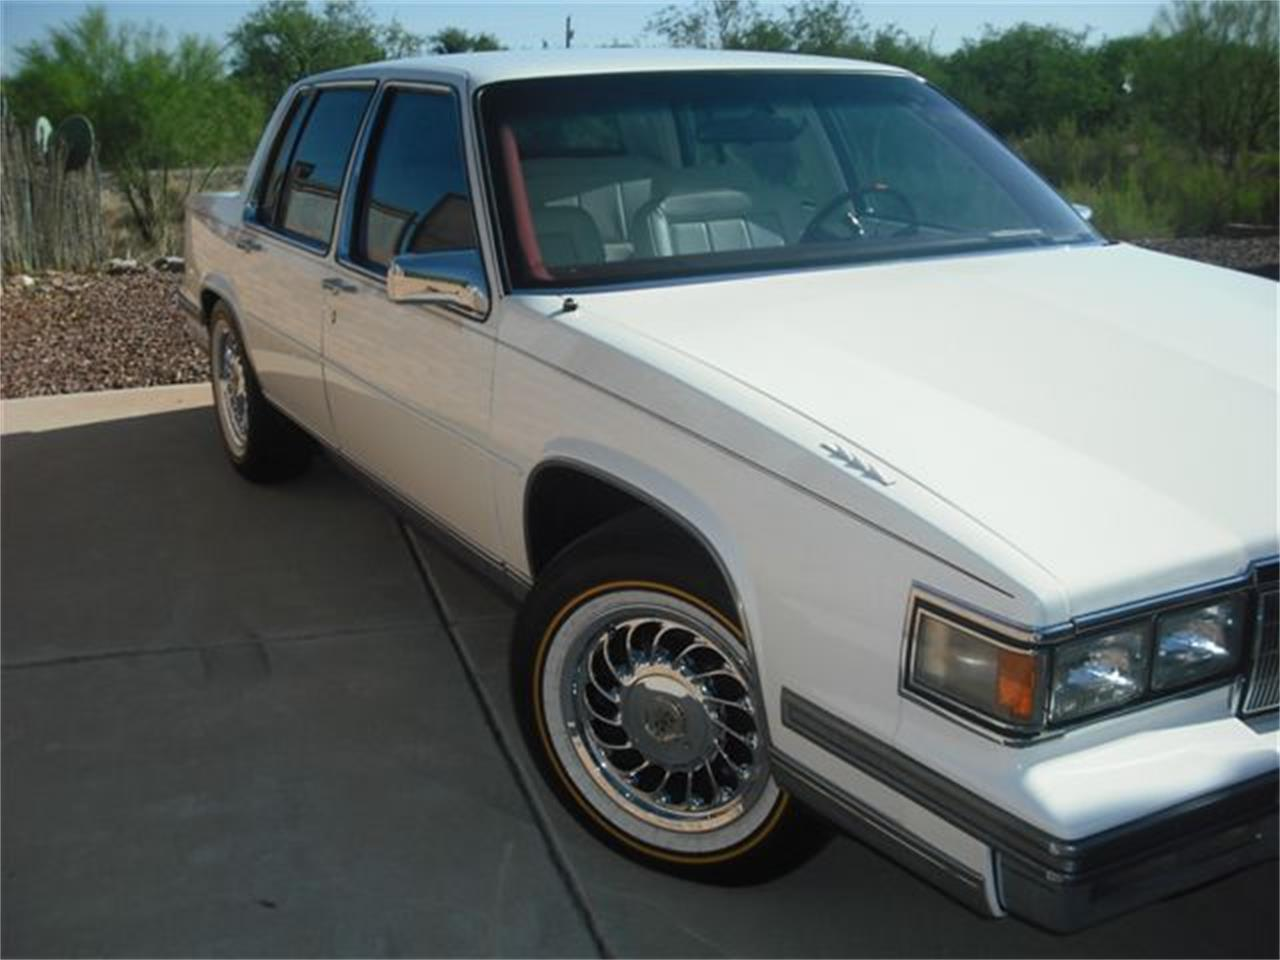 1986 cadillac sedan deville for sale classiccars com cc 1079919 1986 cadillac sedan deville for sale